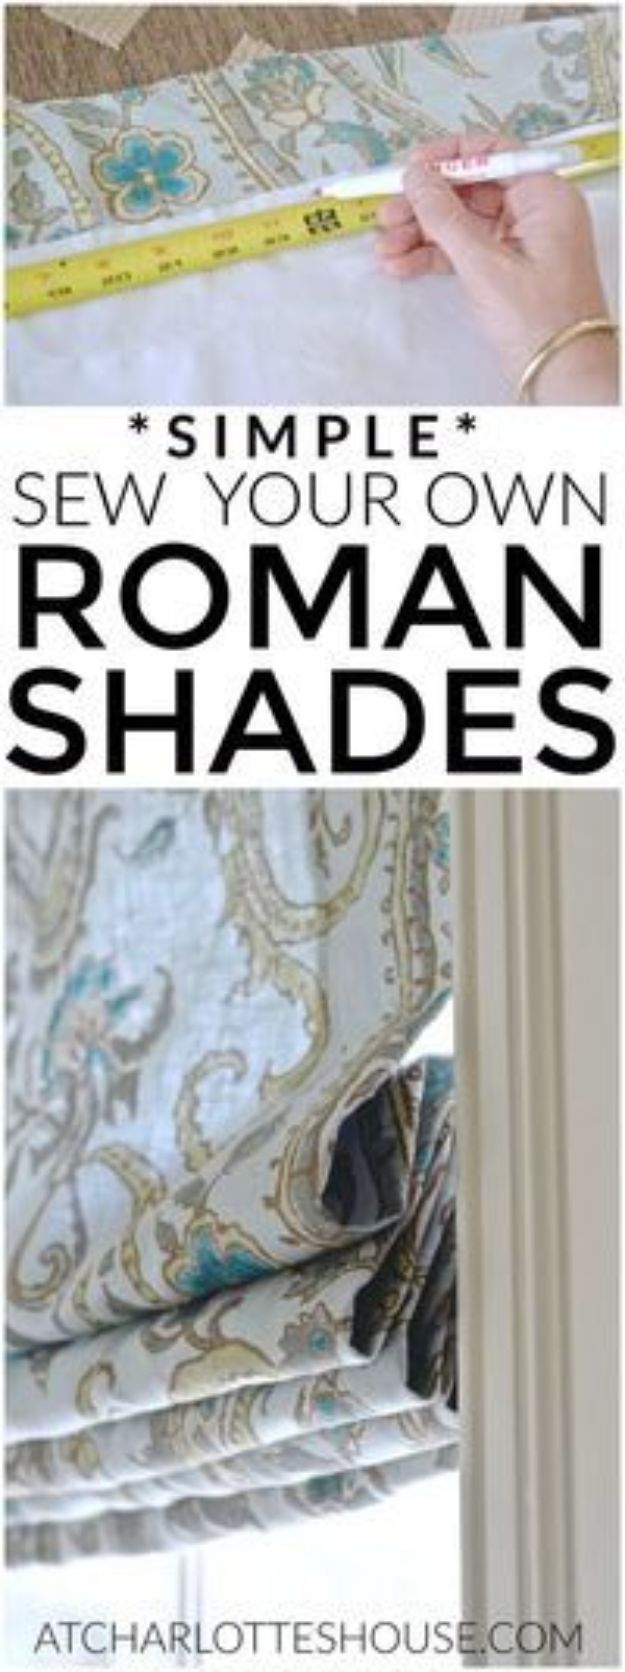 DIY Sewing Projects for the Home - Simple Roman Shades - Easy DIY Christmas Gifts and Ideas for Making Kitchen, Bedroom and Bathroom Decor - Free Step by Step Tutorial to Sew